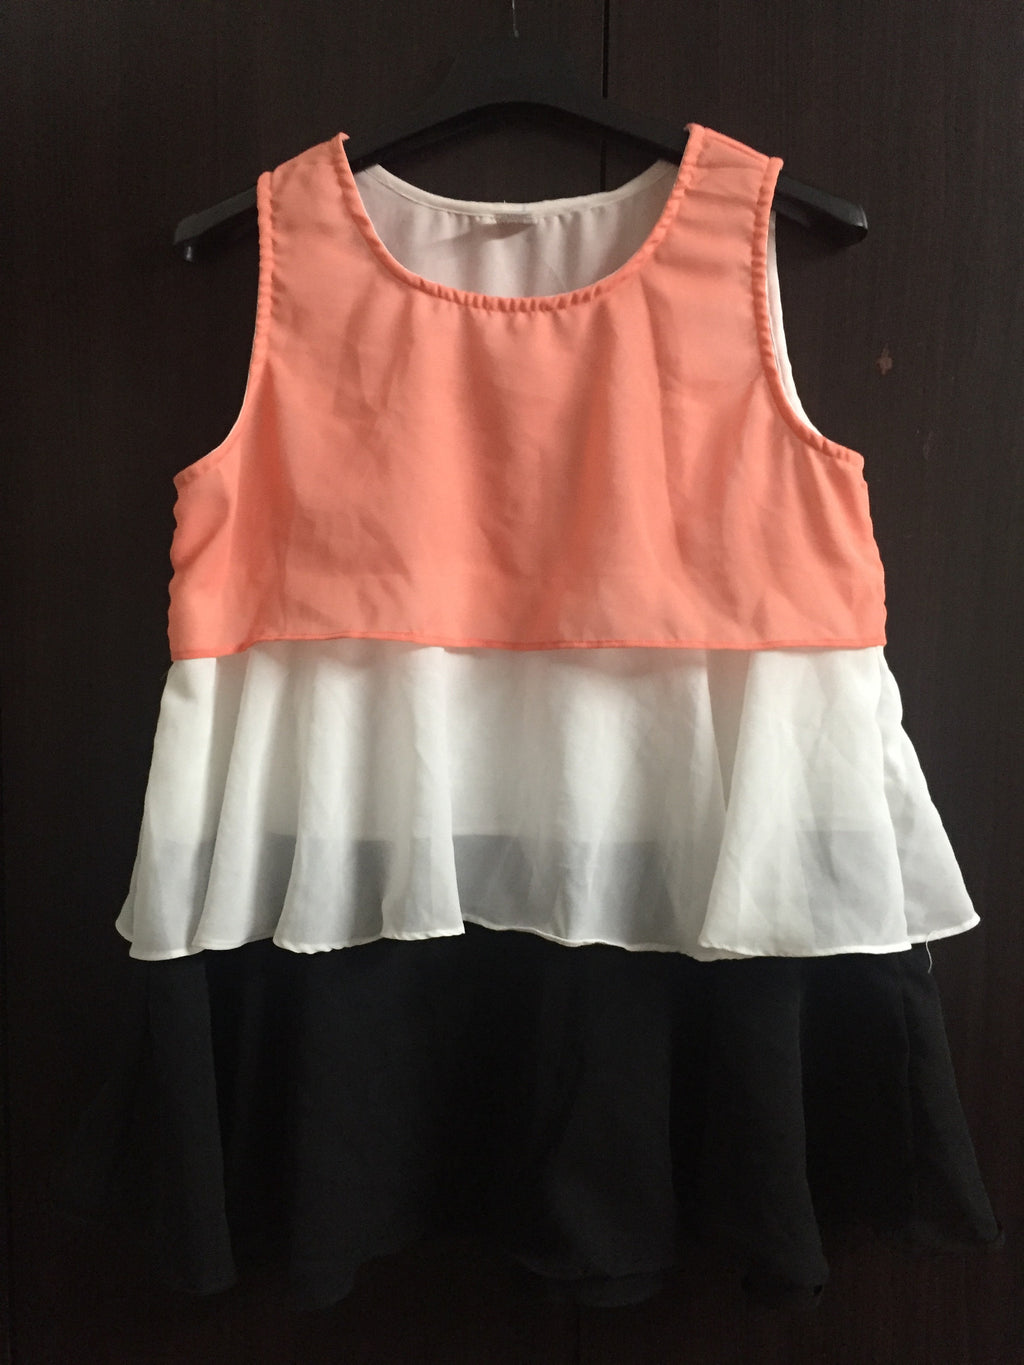 3 Color Sleeveless Top - #FTFY - For The Fun Years